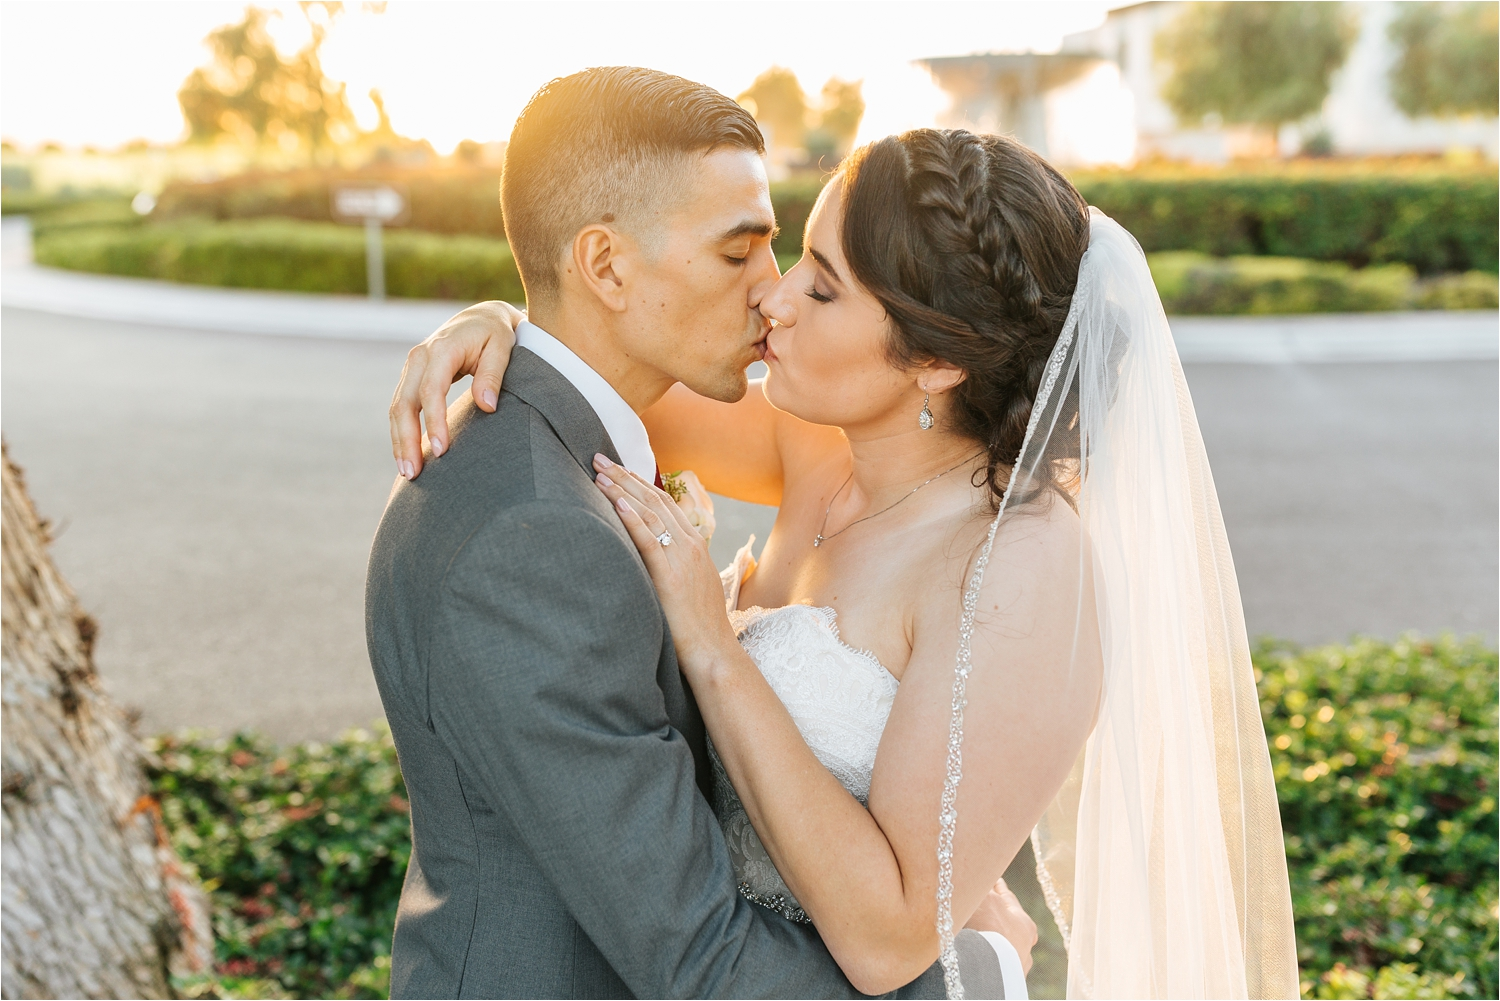 Romantic Bride and Groom Photo at Sunset - Chaffey College Wedding - Chino, CA - https://brittneyhannonphotography.com